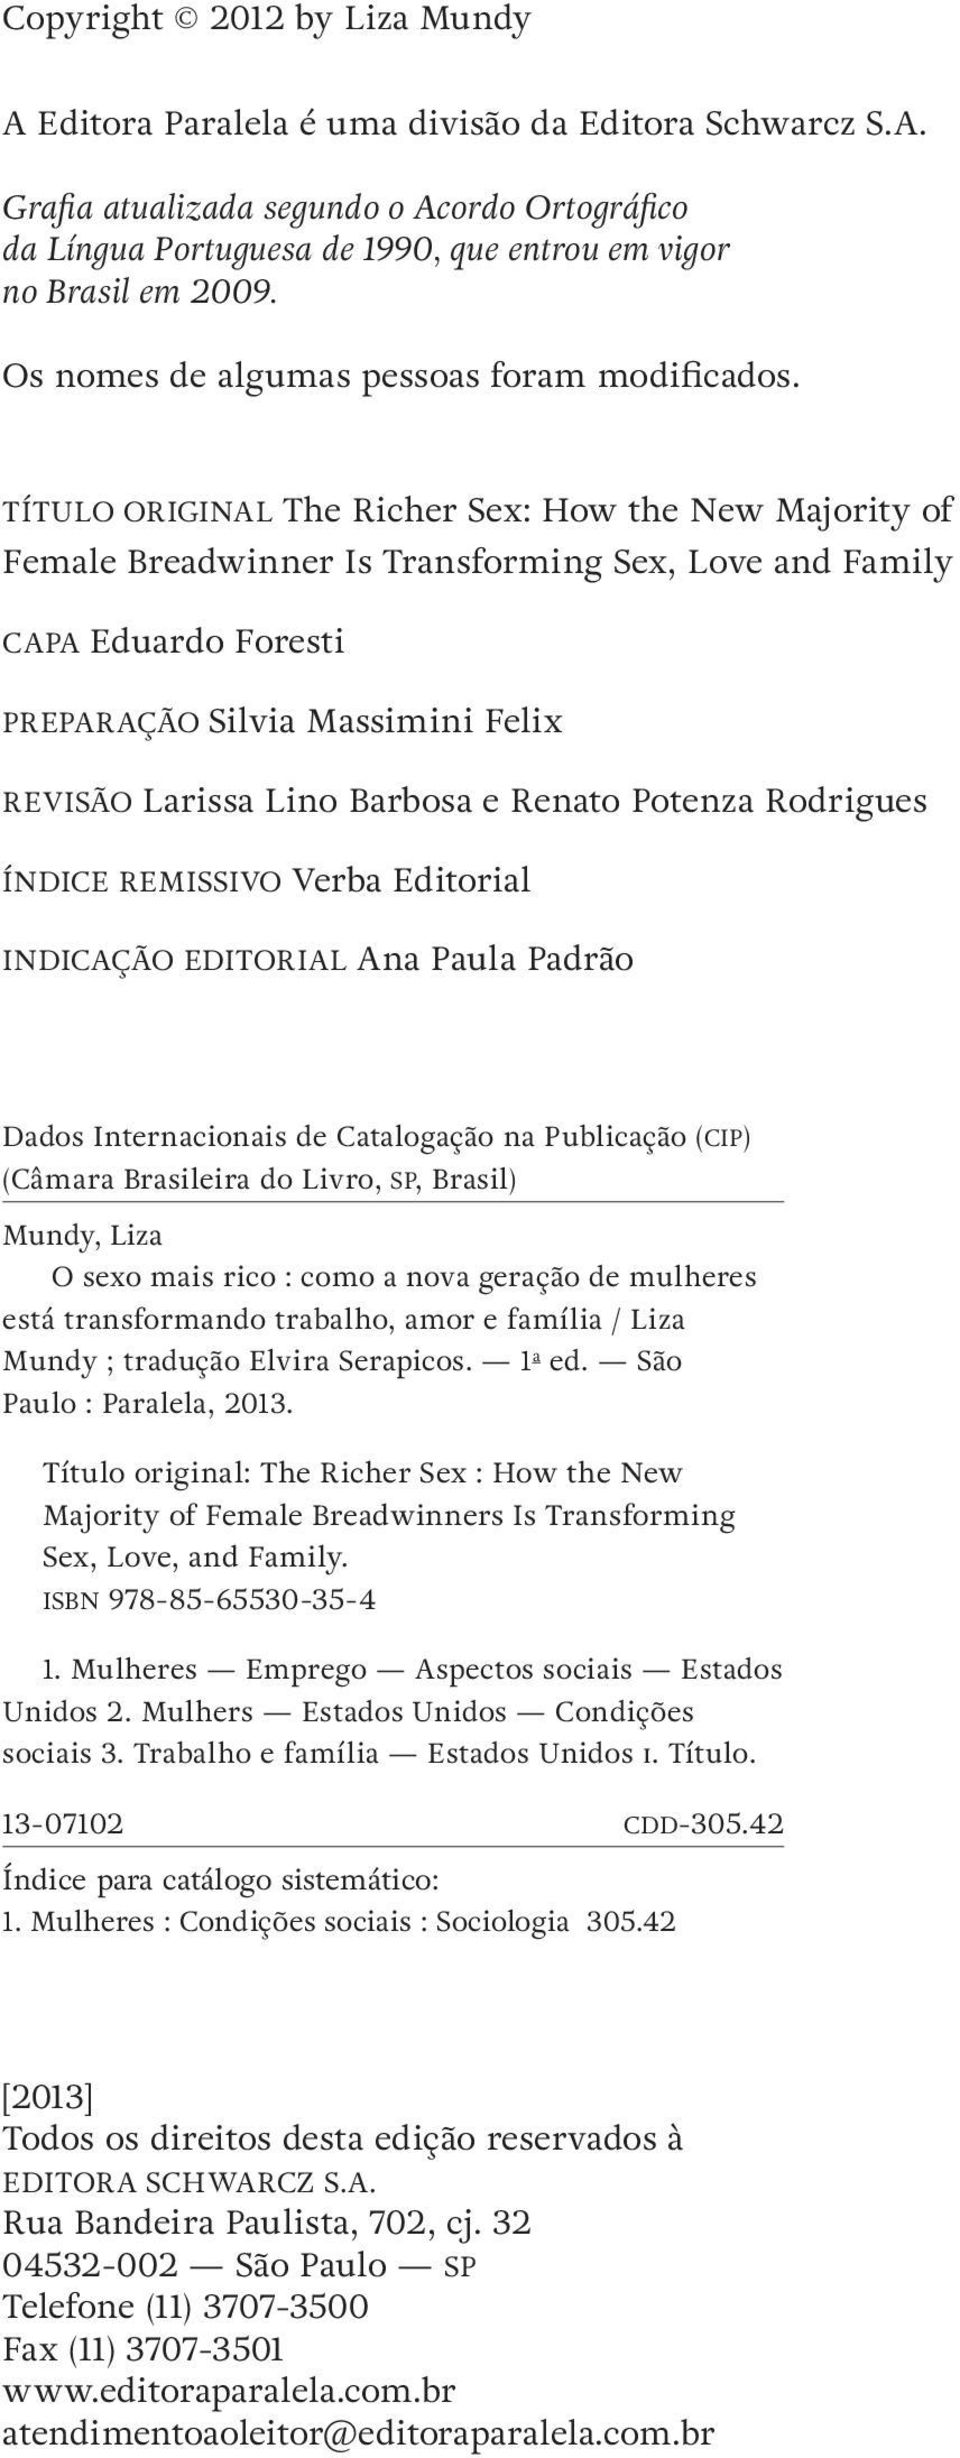 Título original The Richer Sex: How the New Majority of Female Breadwinner Is Transforming Sex, Love and Family Capa Eduardo Foresti Preparação Silvia Massimini Felix Revisão Larissa Lino Barbosa e